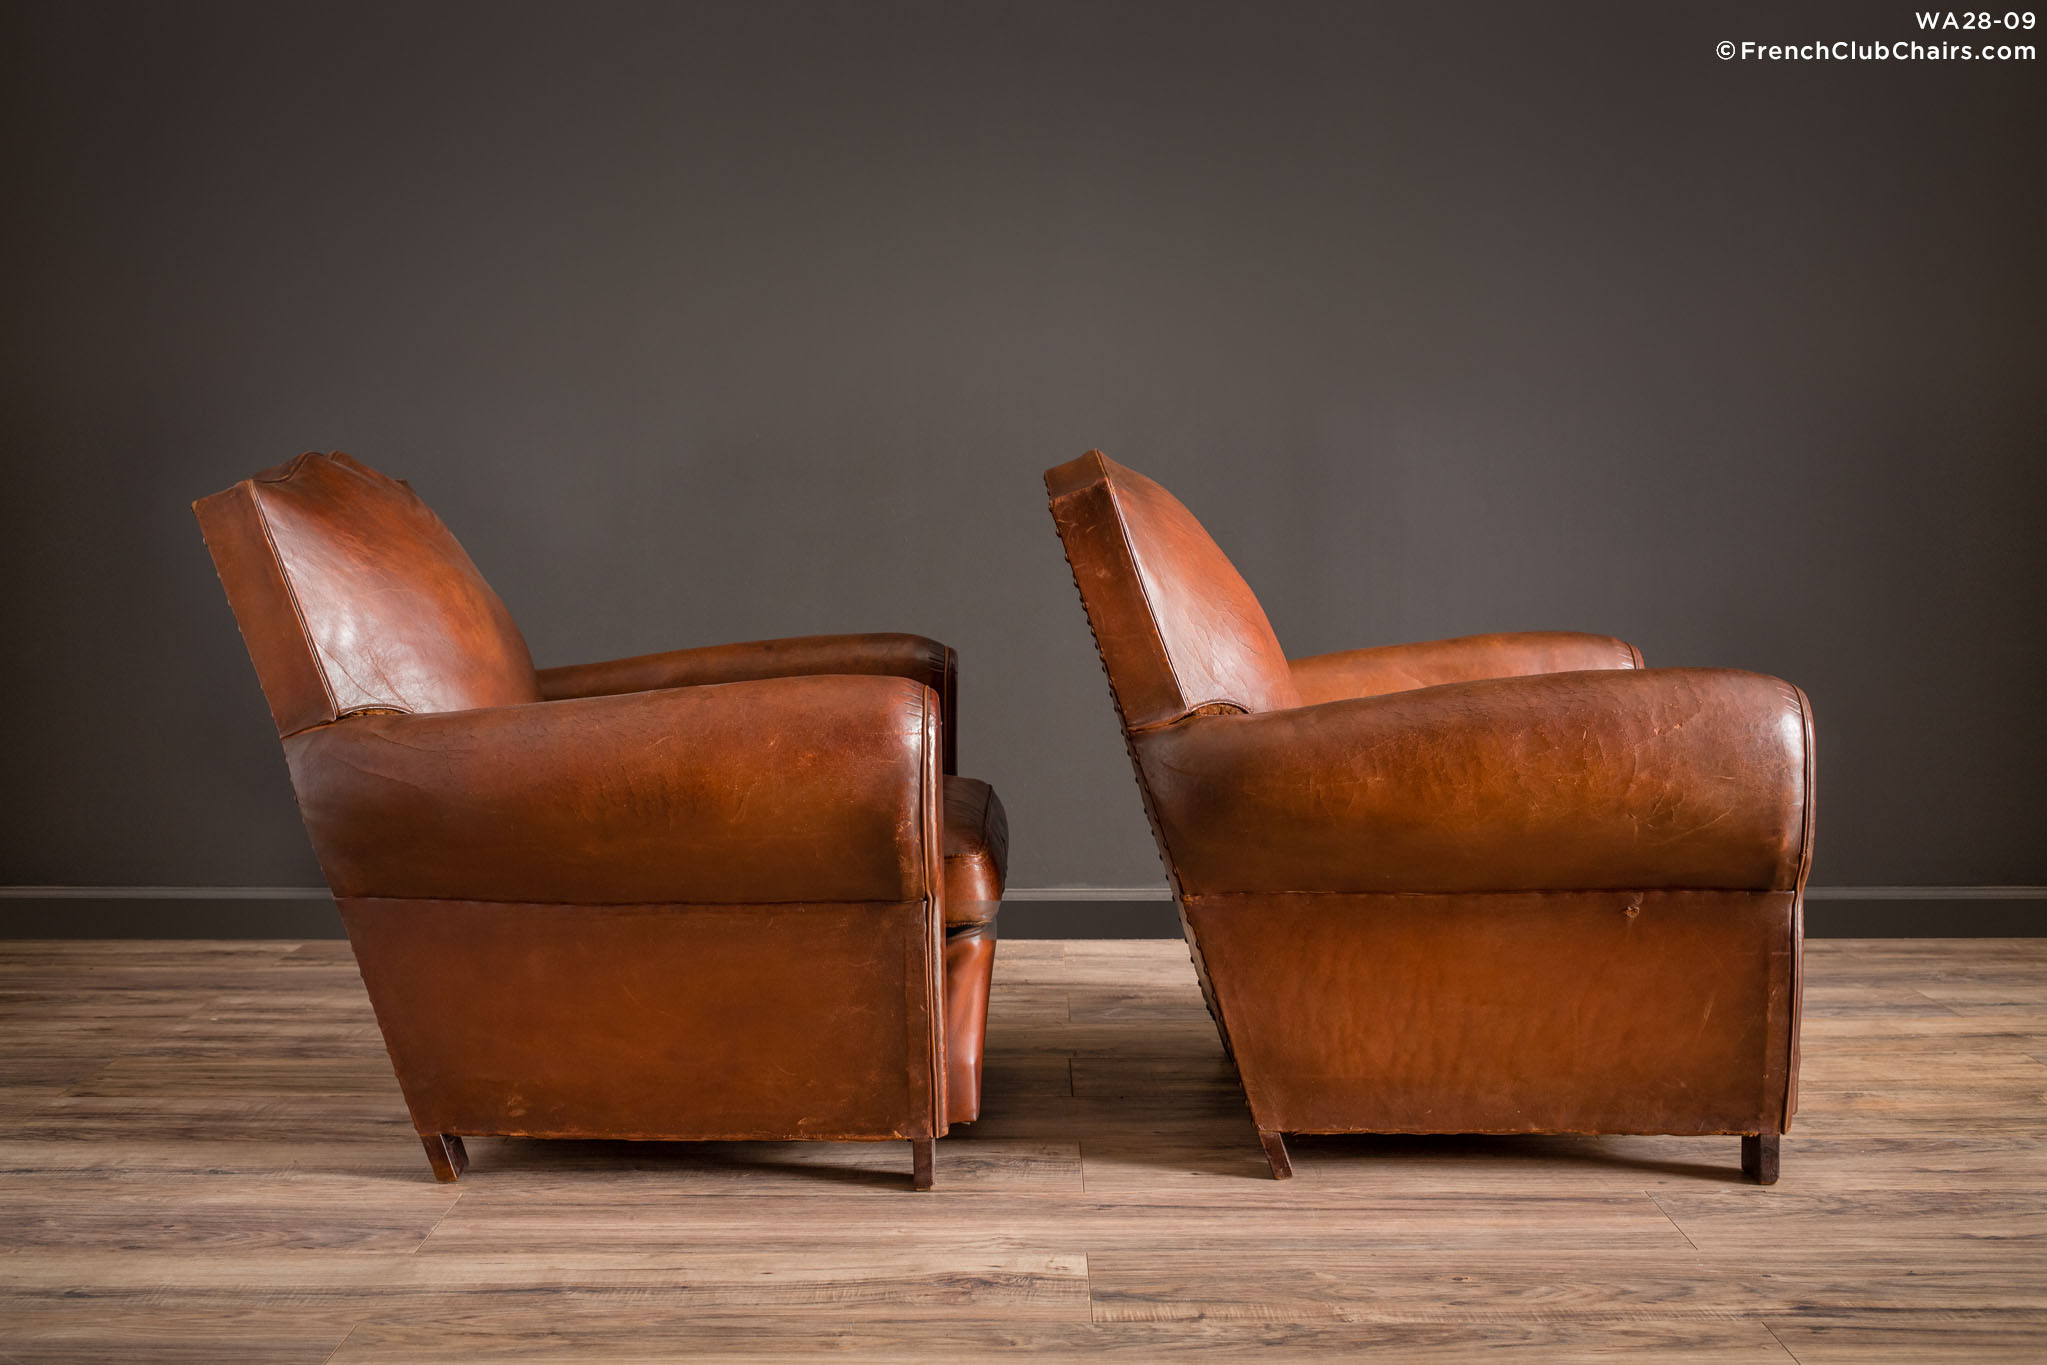 WA_28-09_Epernay_Moustache_Pair_R_3RT1-williams-antiks-leather-french-club-chair-wa_fcccom